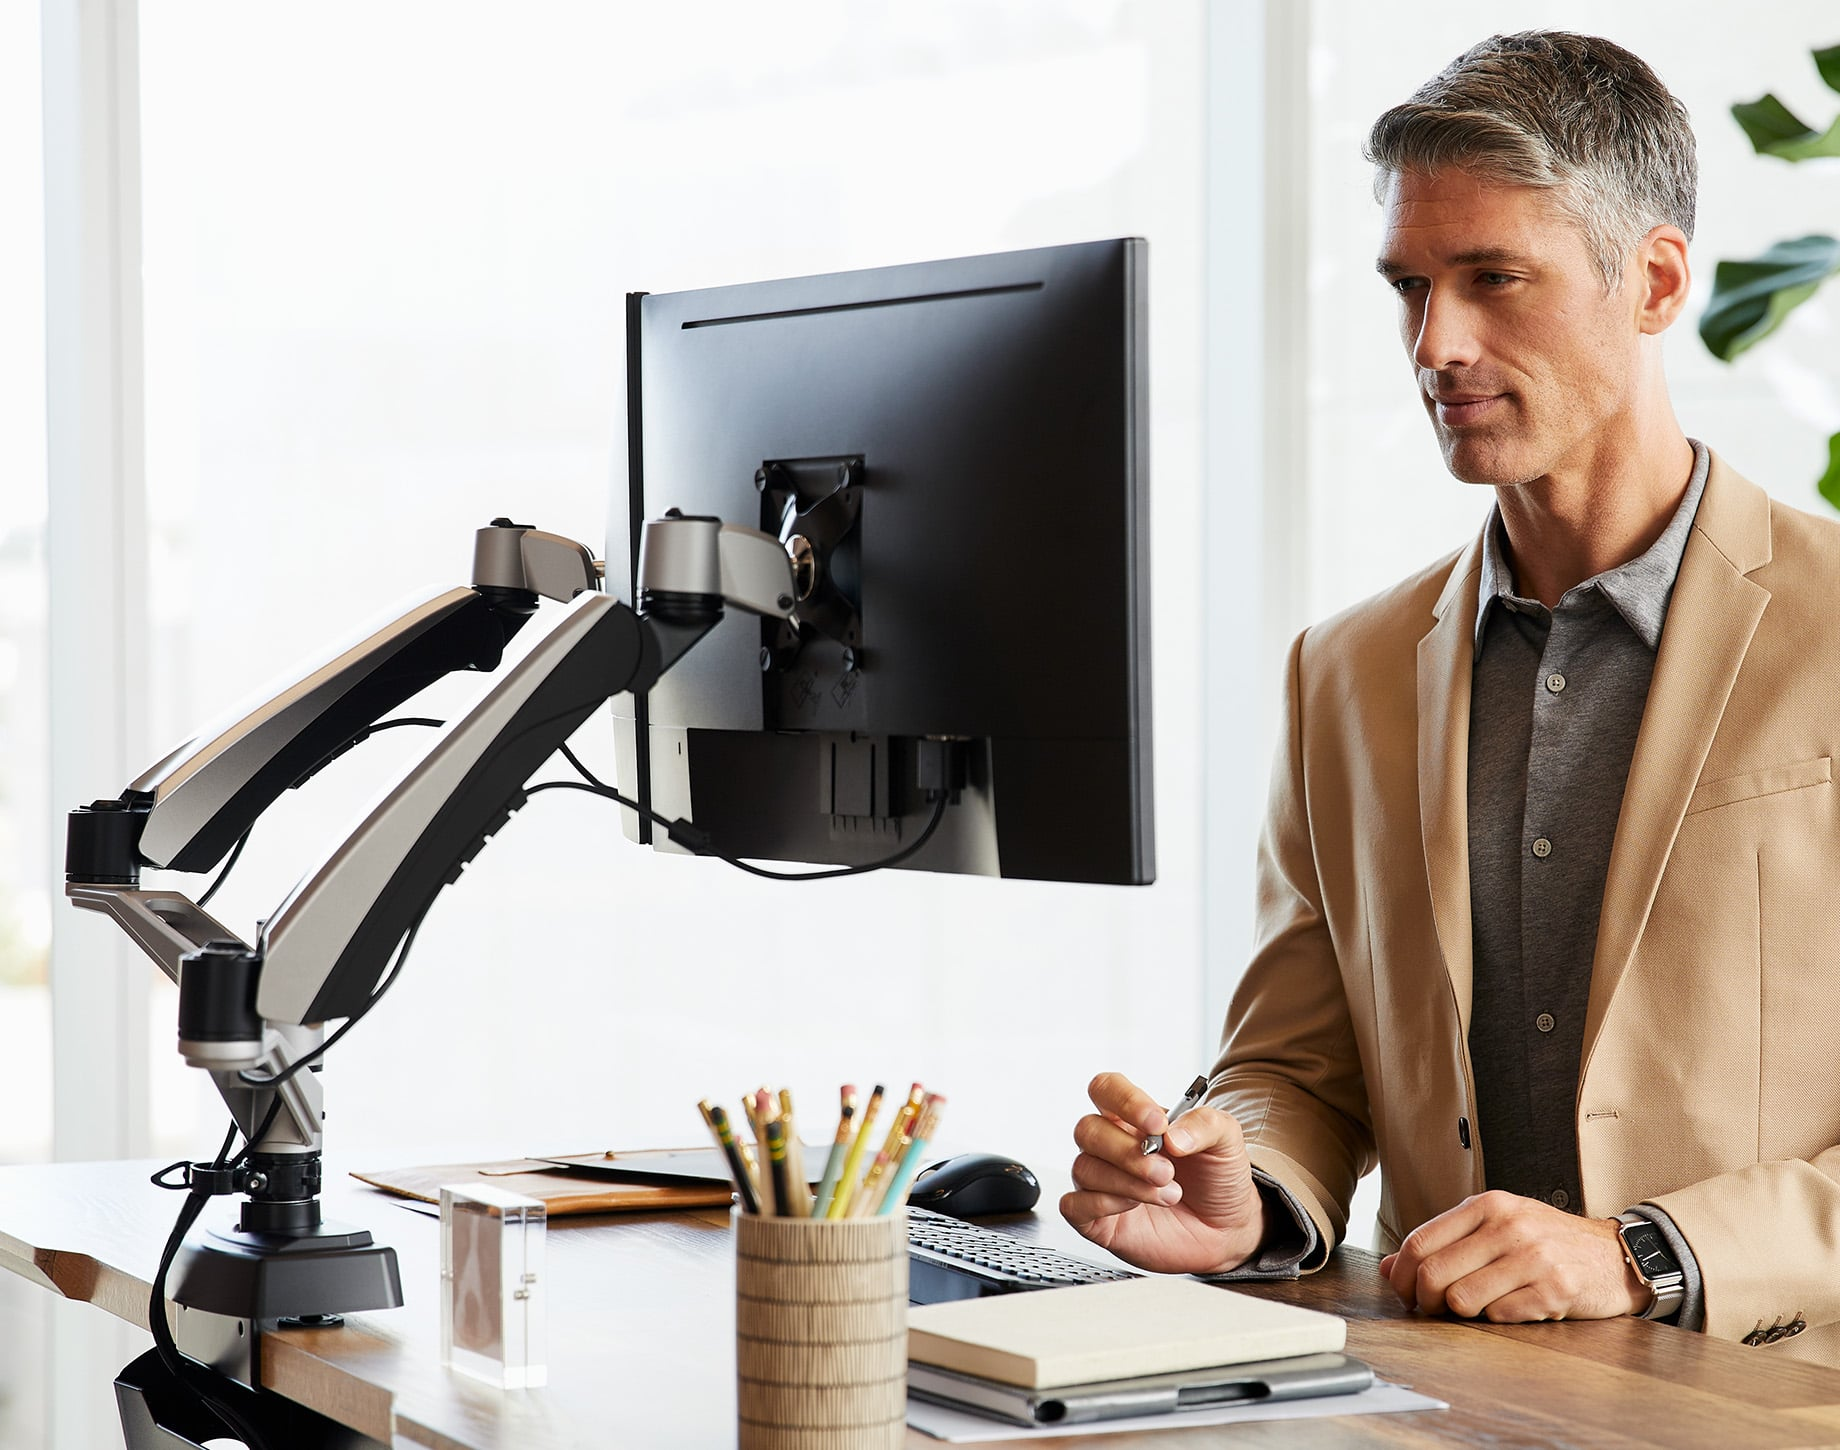 adjustable monitor arms hold computers high enough so that an office professional can comfortably use the computer